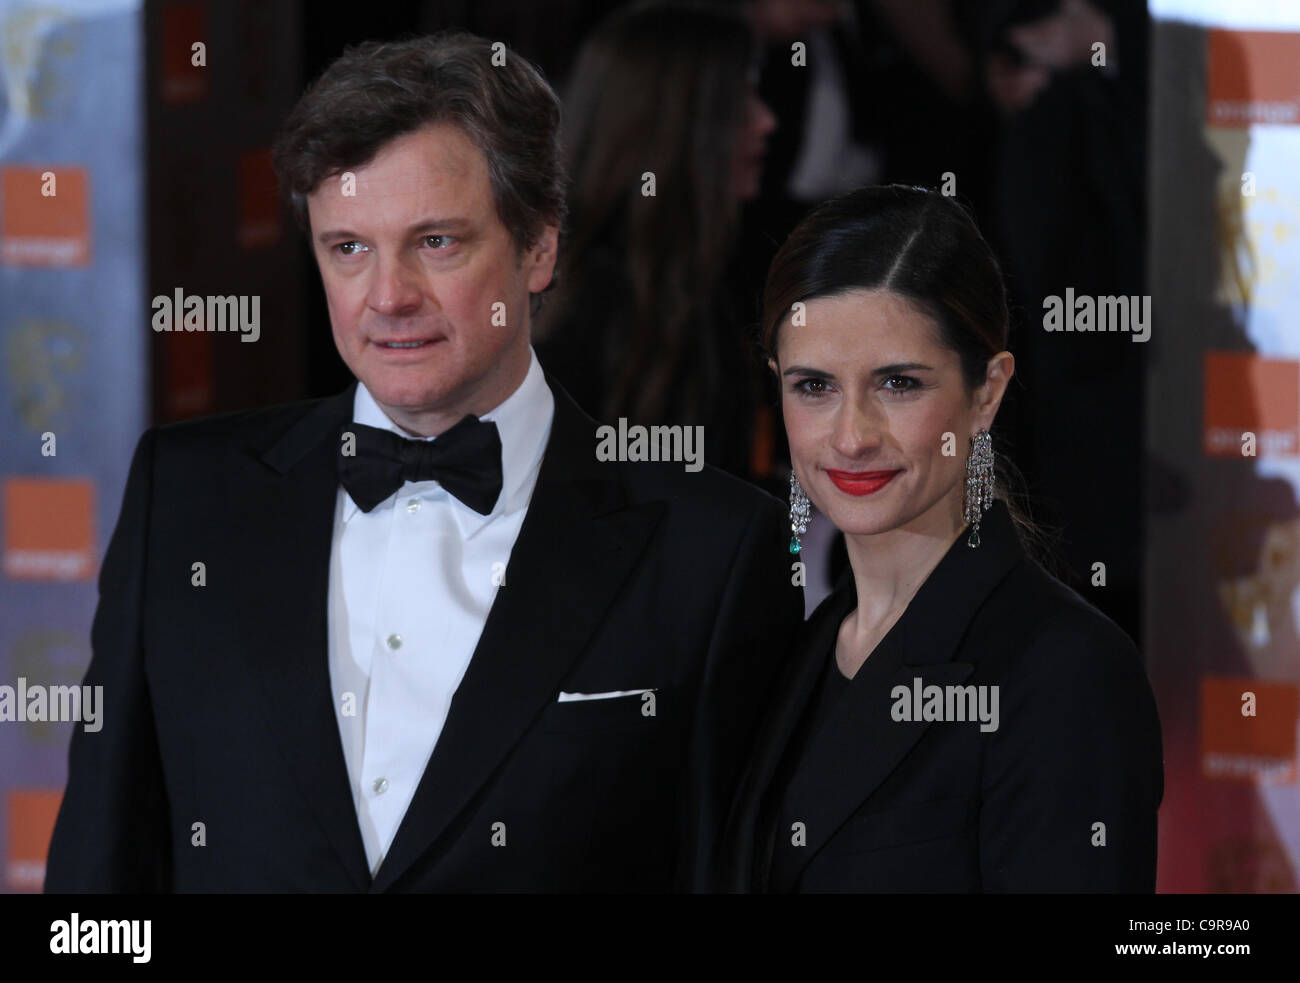 London, UK, 02.12.2012 Colin Firth & Livia Giuggioli kommt für die Orange British Academy Film Awards (BAFTAS) Stockbild